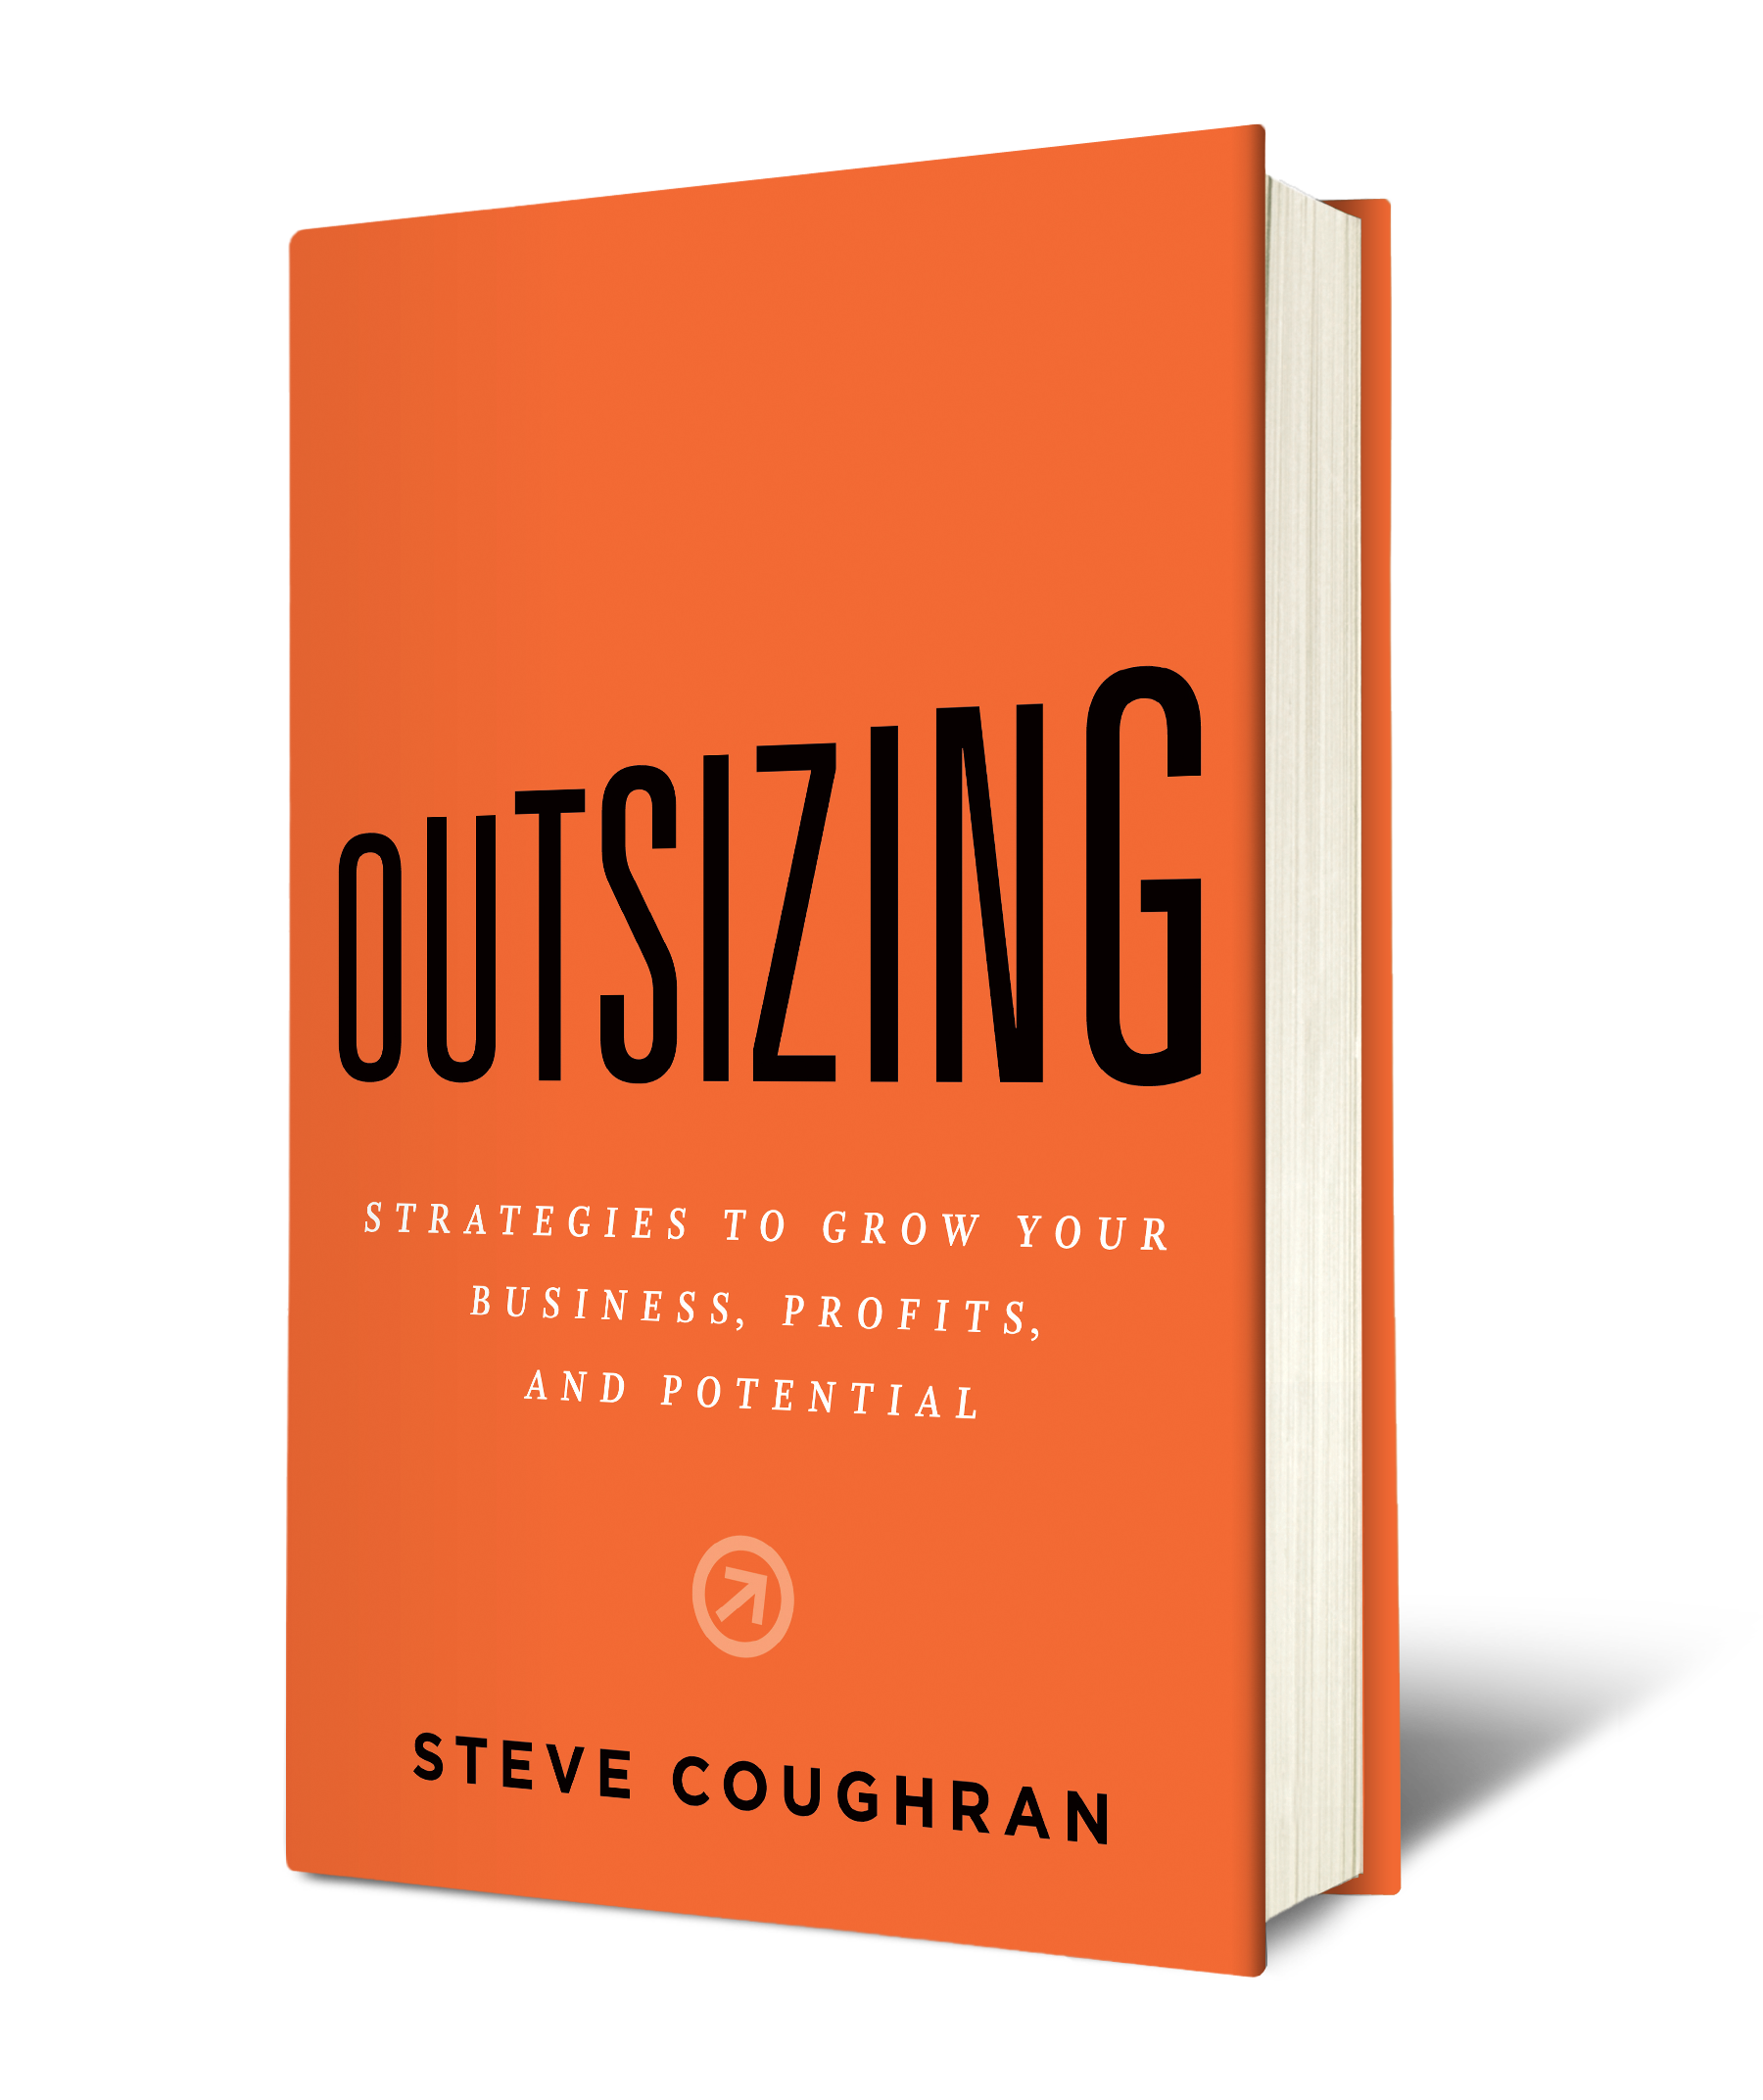 Be the first to own Steve's newest book - Do you want to grow your business? In the past, have you struggled to realize the desired outcomes of your strategy? Do you feel that you're making all the right business moves but are still coming up short? In Outsizing, author Steve Coughran assembles decades of research, hundreds of interviews, and multi-industry consulting experience to identify the strategic factors that dictate the difference between exorbitant success and bankruptcy.